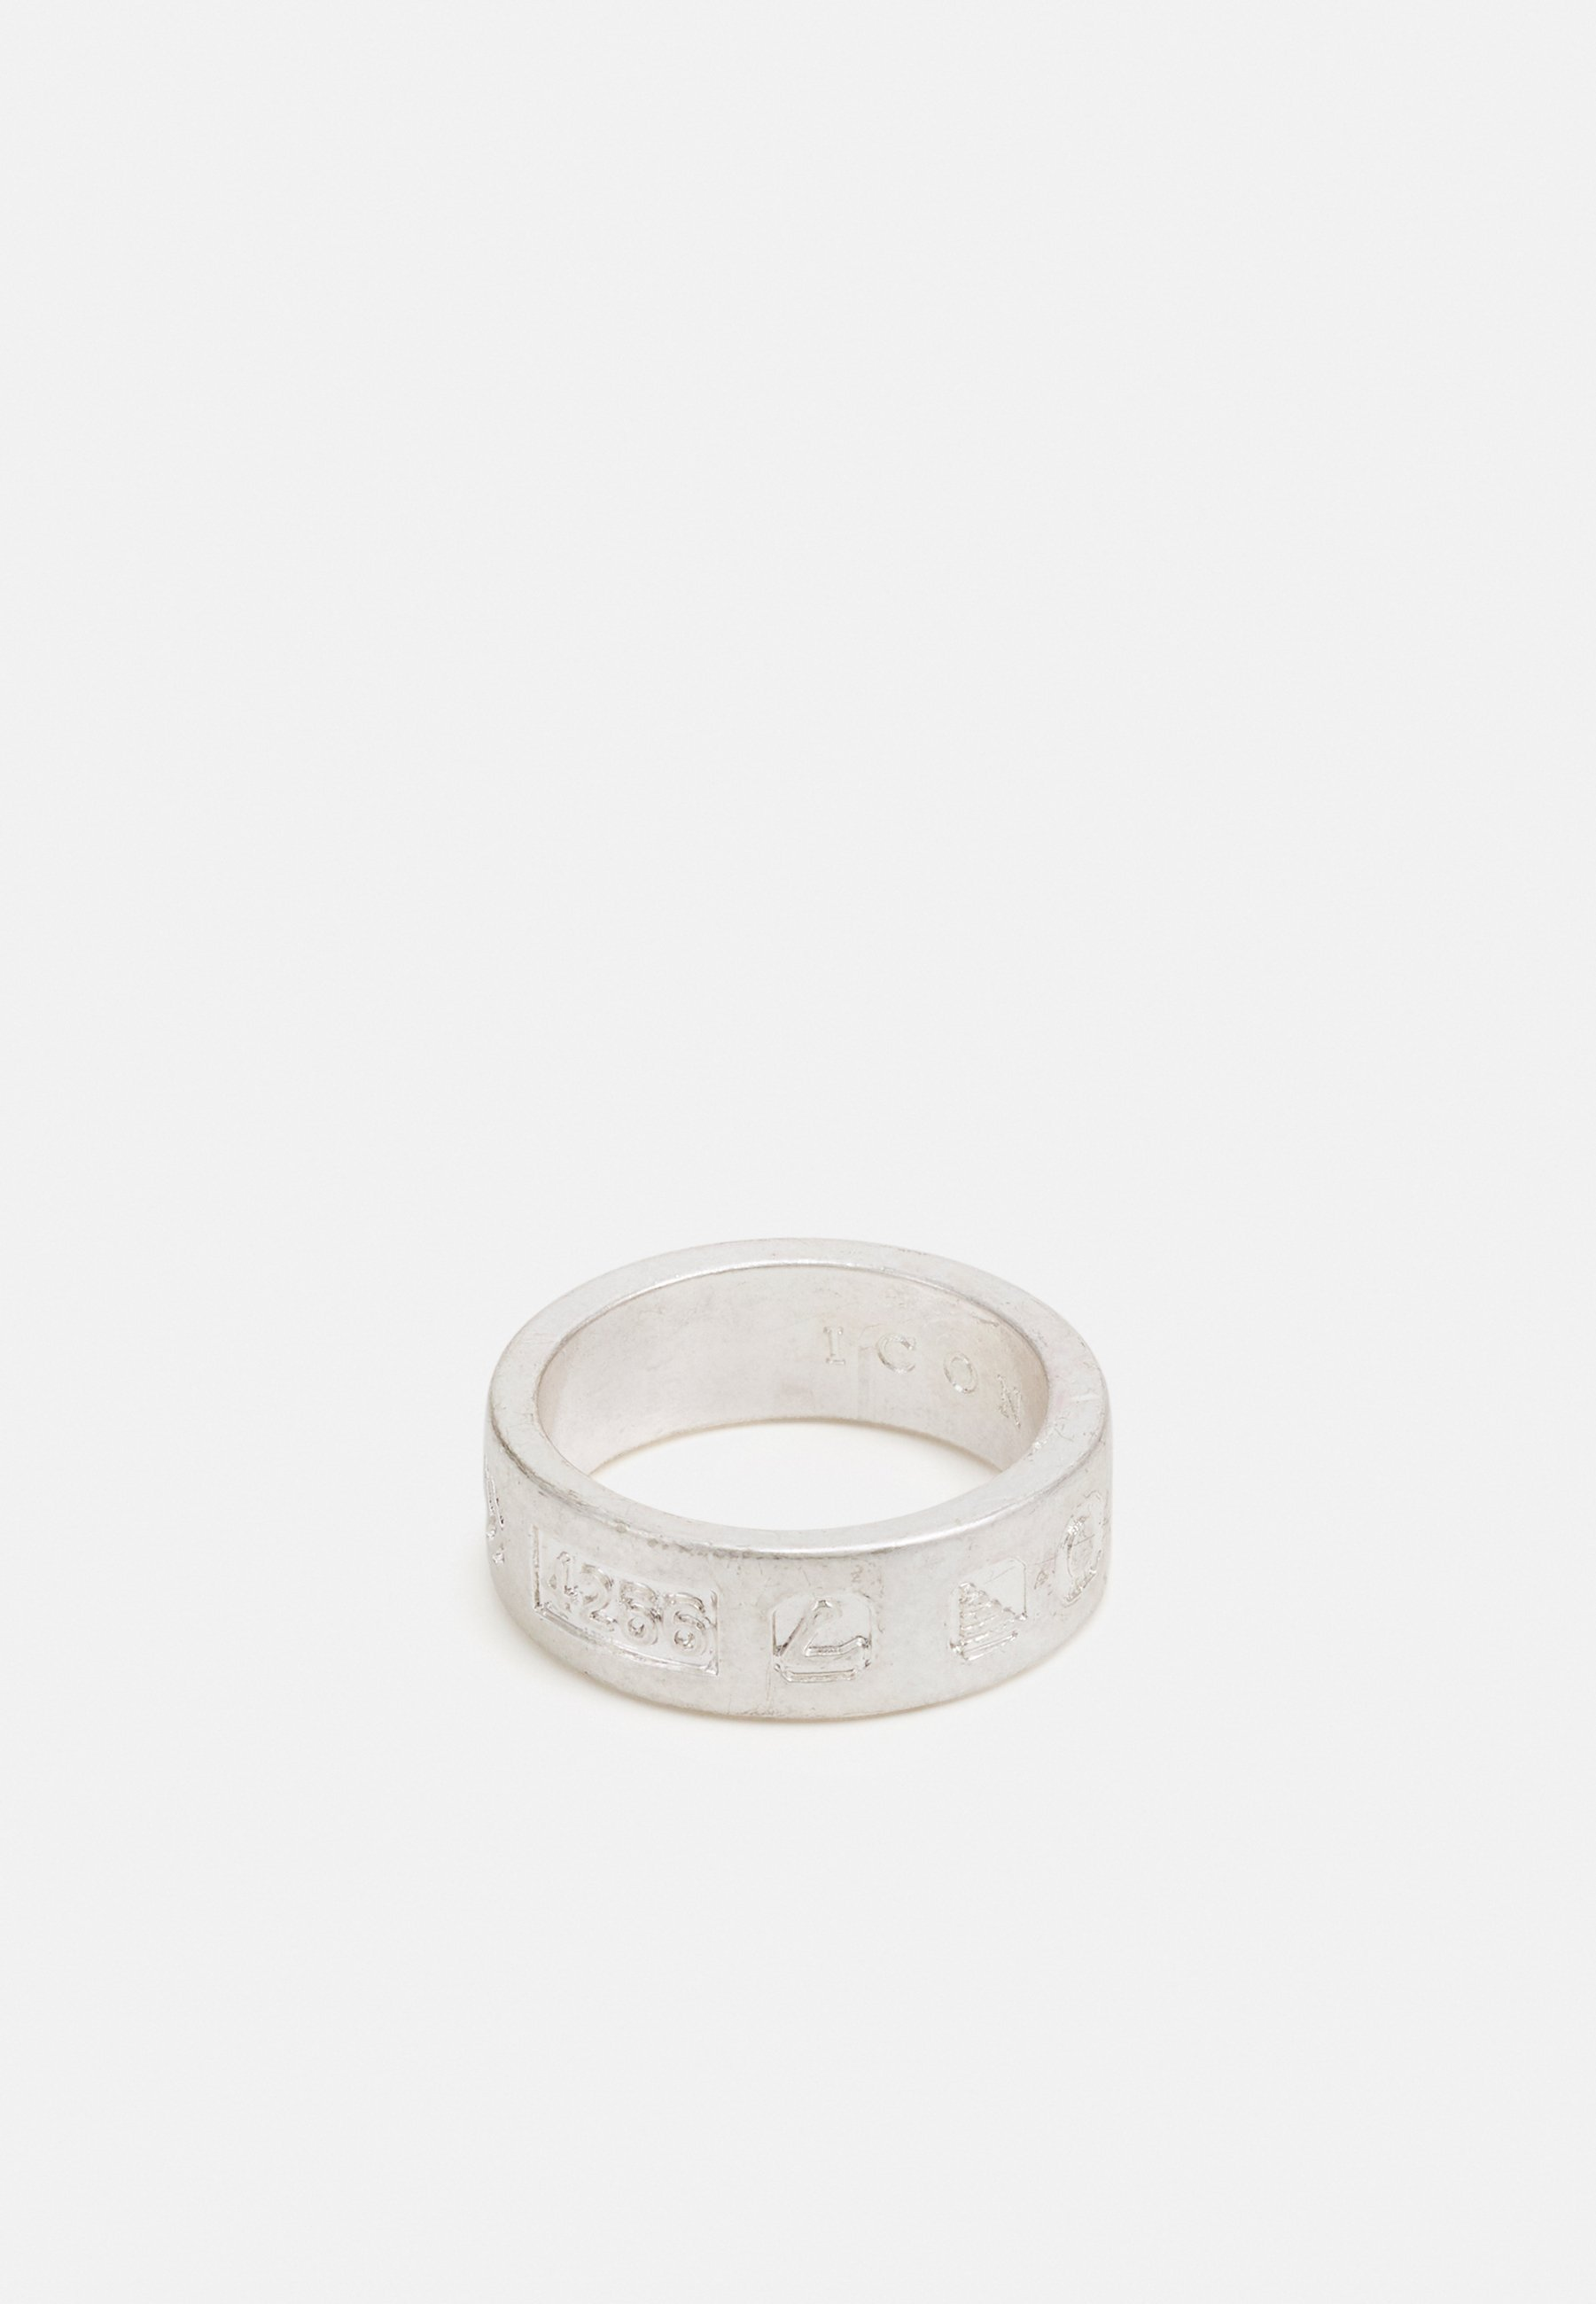 Homme MILITARY PRECISION ID BAND - Bague